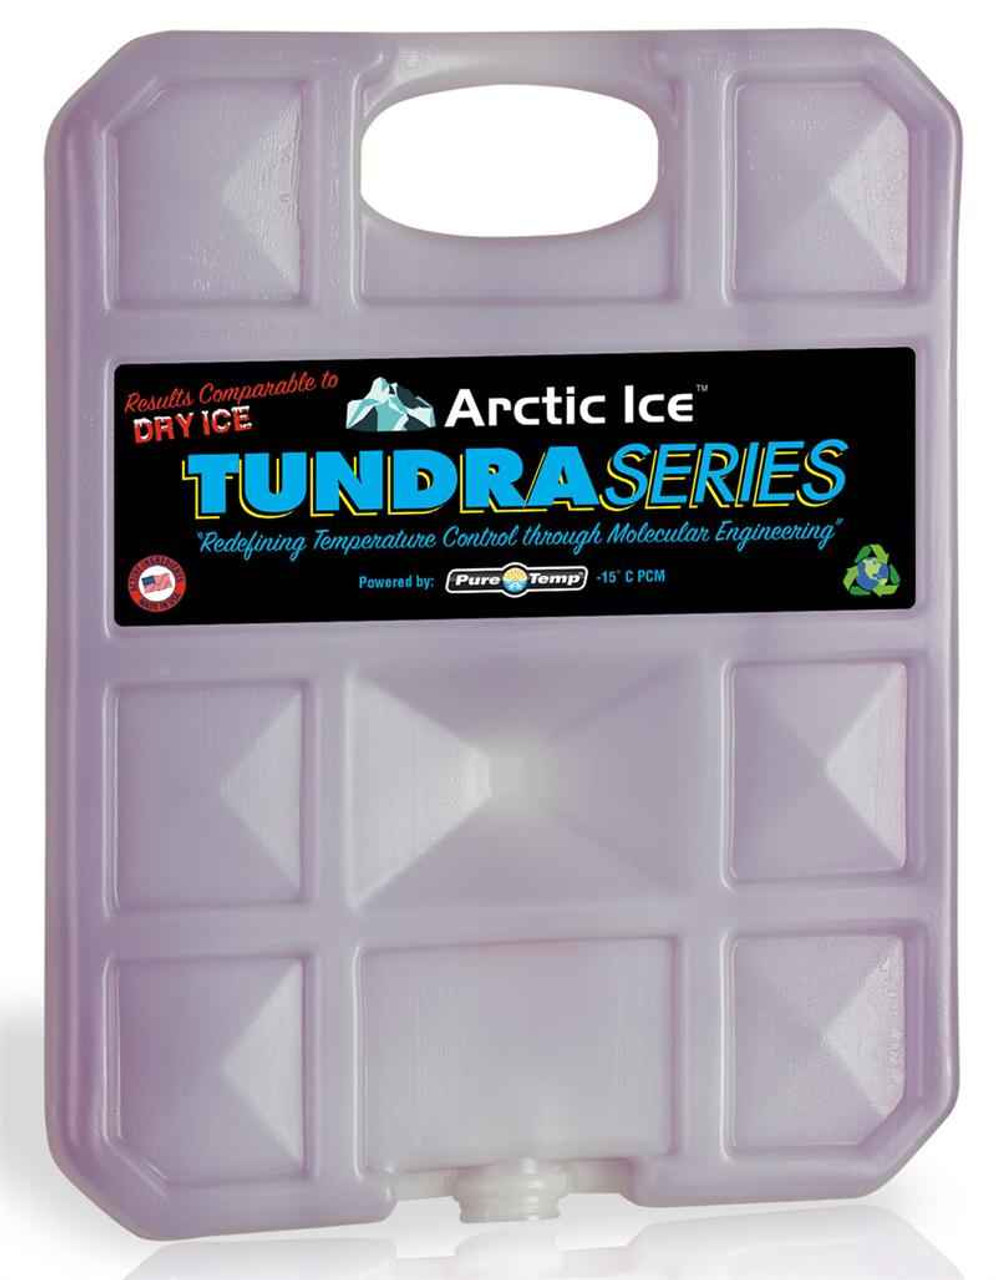 Arctic Ice Tundra Series, Large 2.5lbs